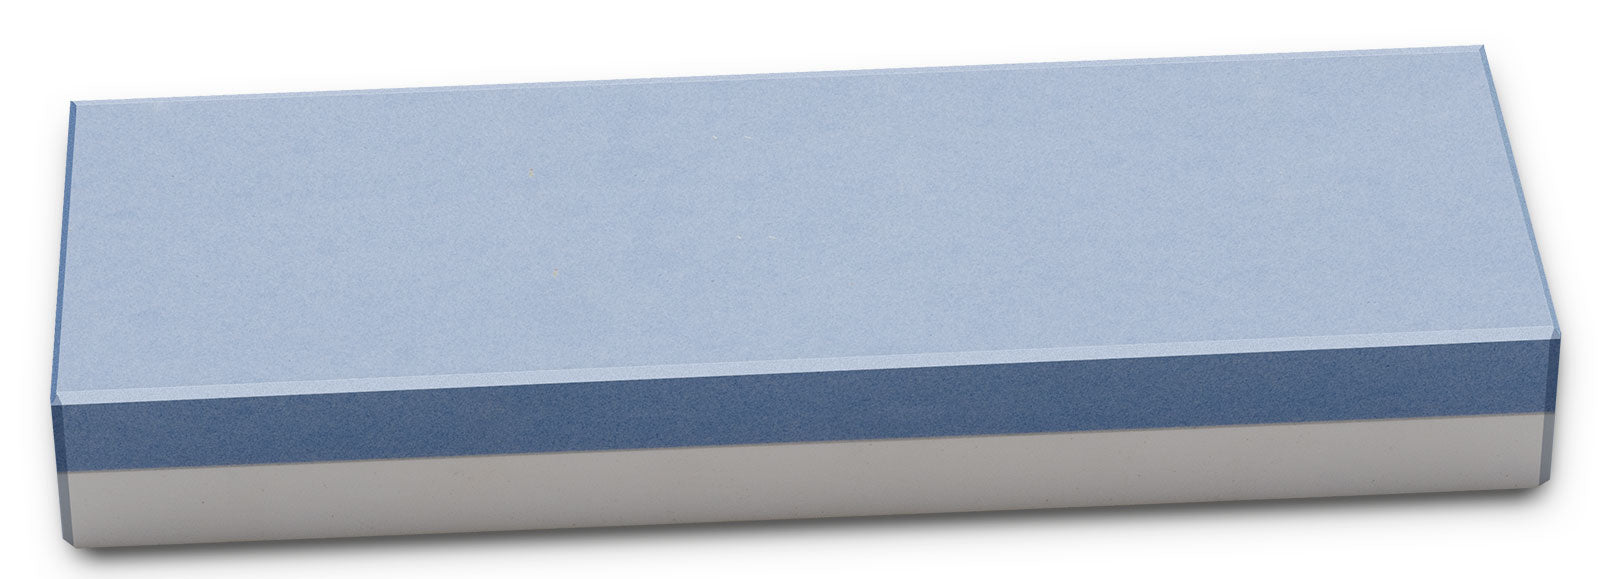 Wusthof Sharpening Stone, Superfine 3000/8000 - #4452